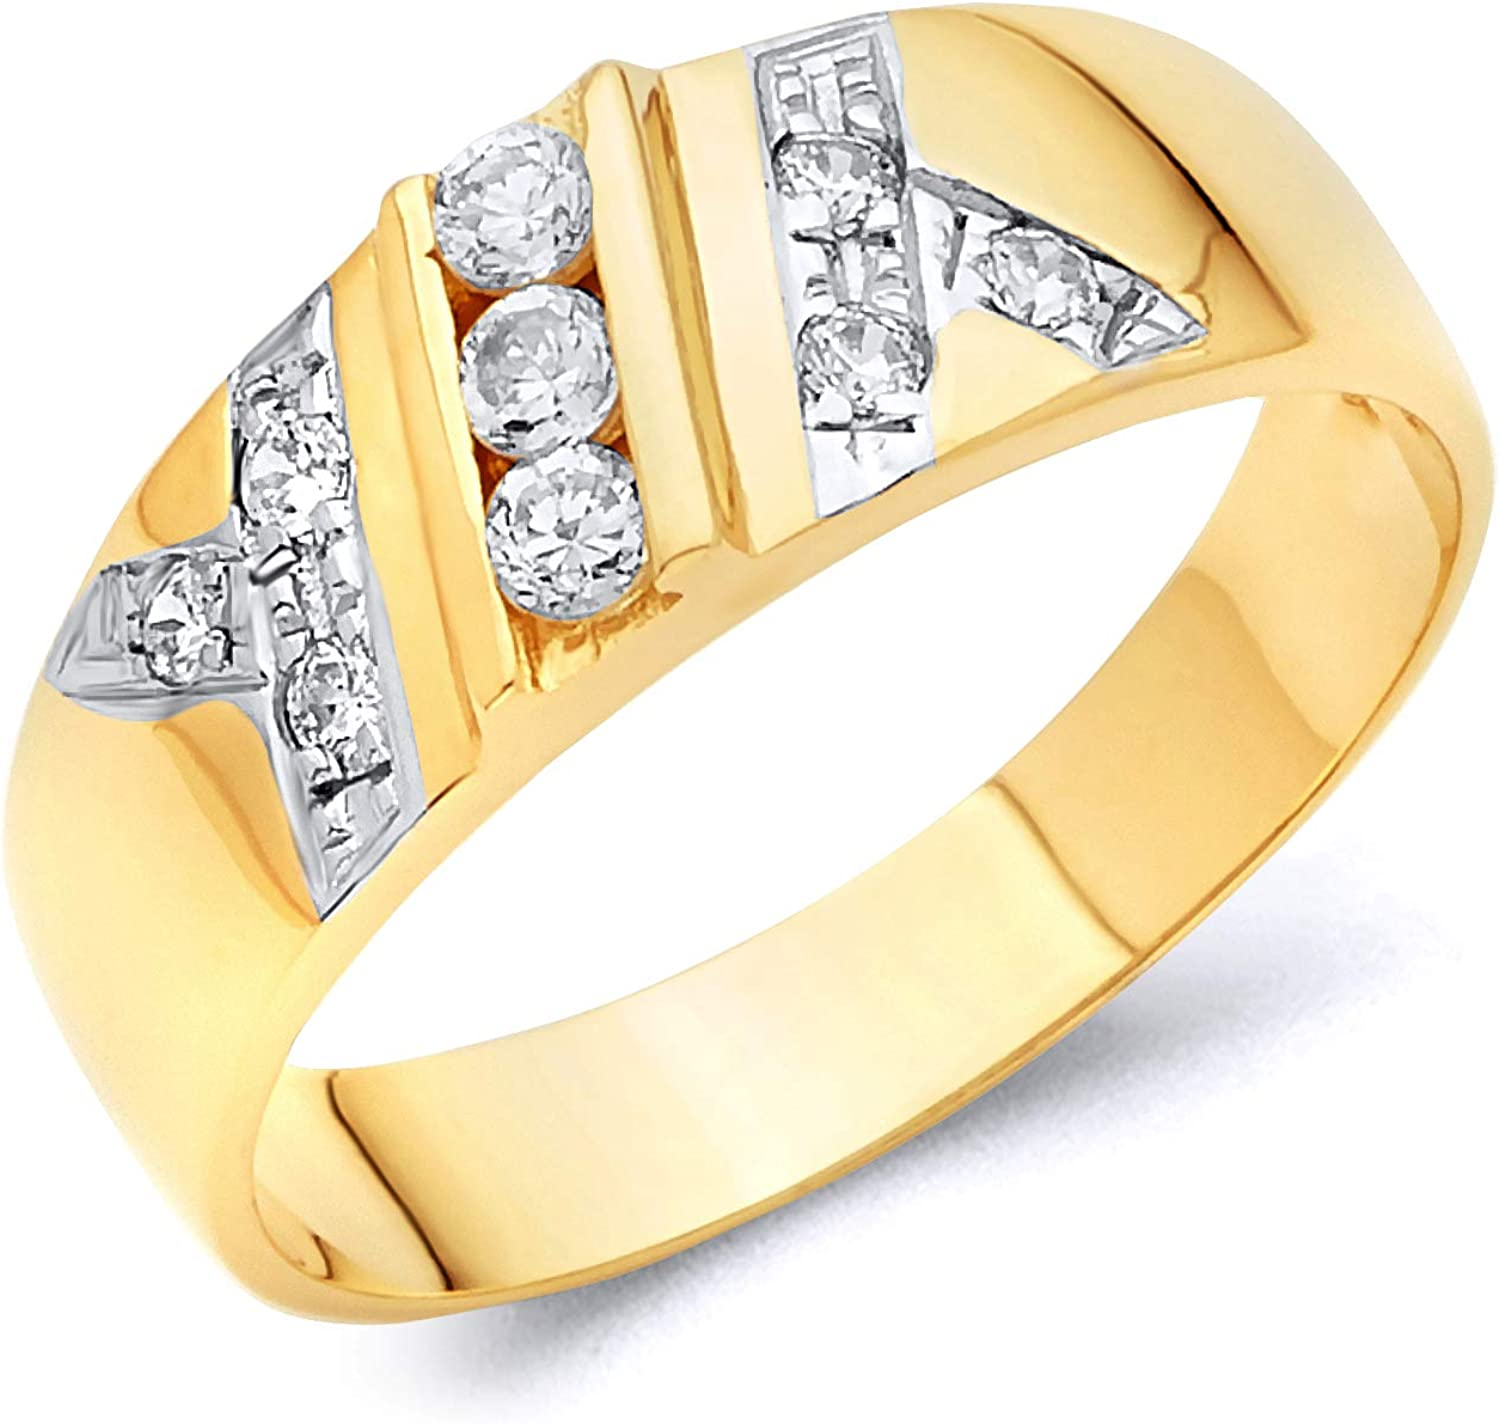 Jewel Tie Solid 14k Yellow Gold Cubic Zirconia CZ Mens 3 Stone Fashion Ring OR Wedding Ring Band Size 8